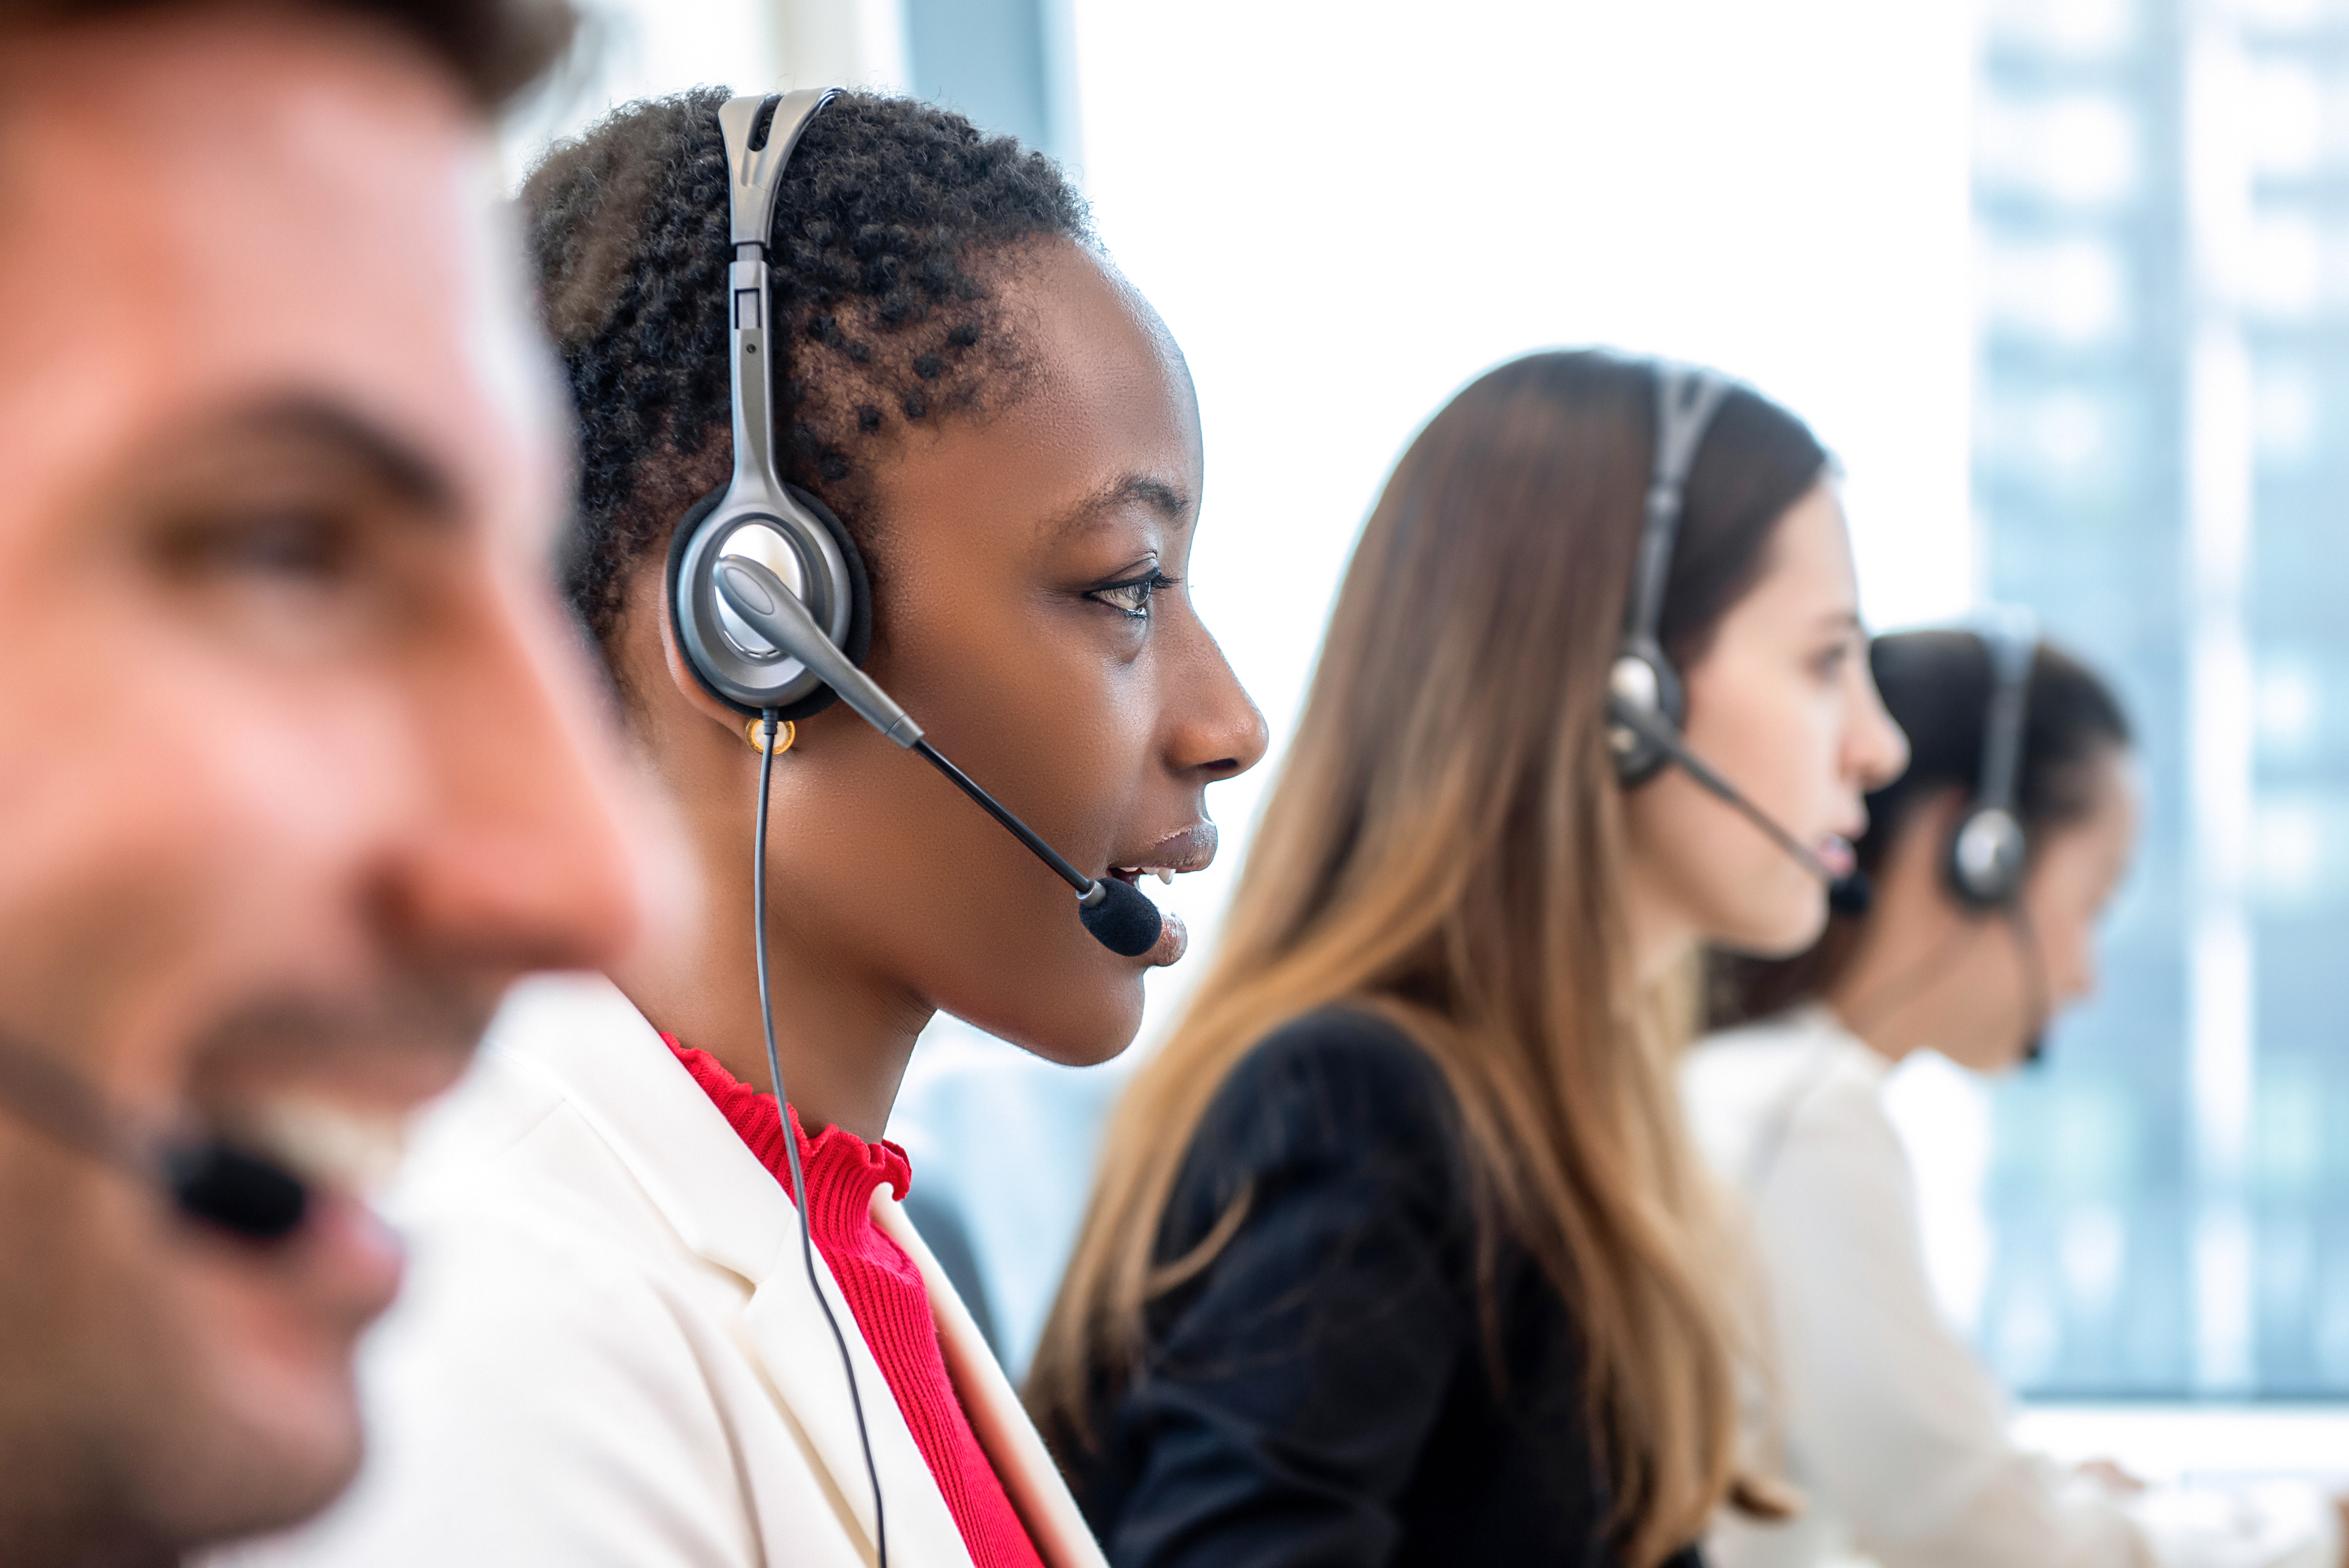 In an Age of Automation and Self-Service, Why Are There Still Contact Centres?